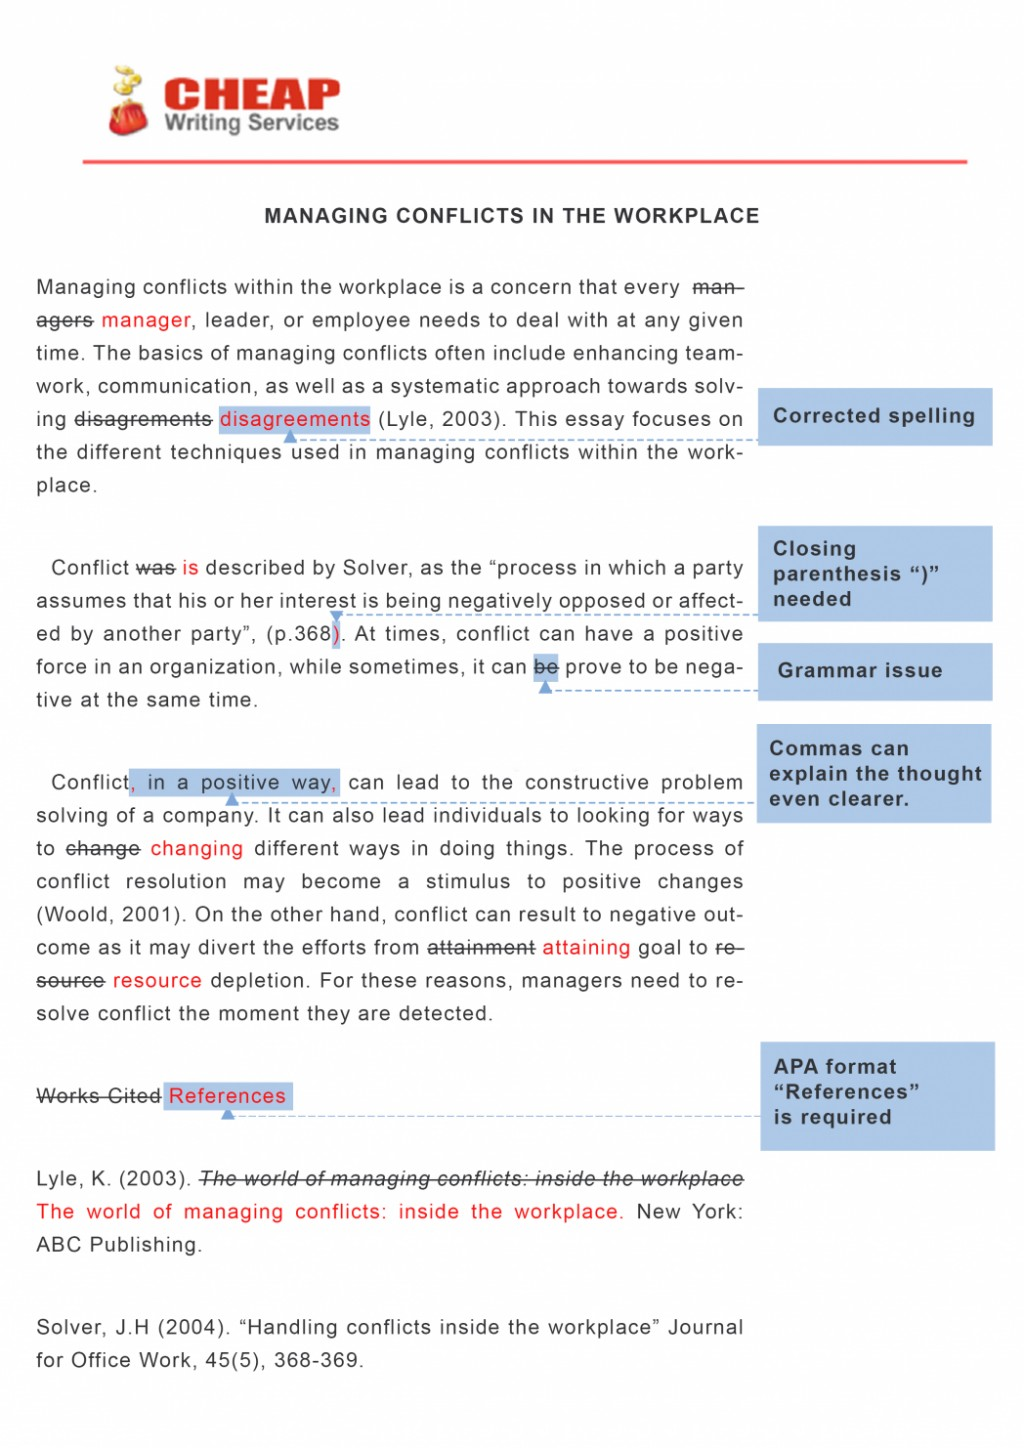 004 Cheap Essay Writing Service Uk Example Legit Services Essays Online Editing Ex Are There Any Legitimate Reddit Incredible Reviews Law Large